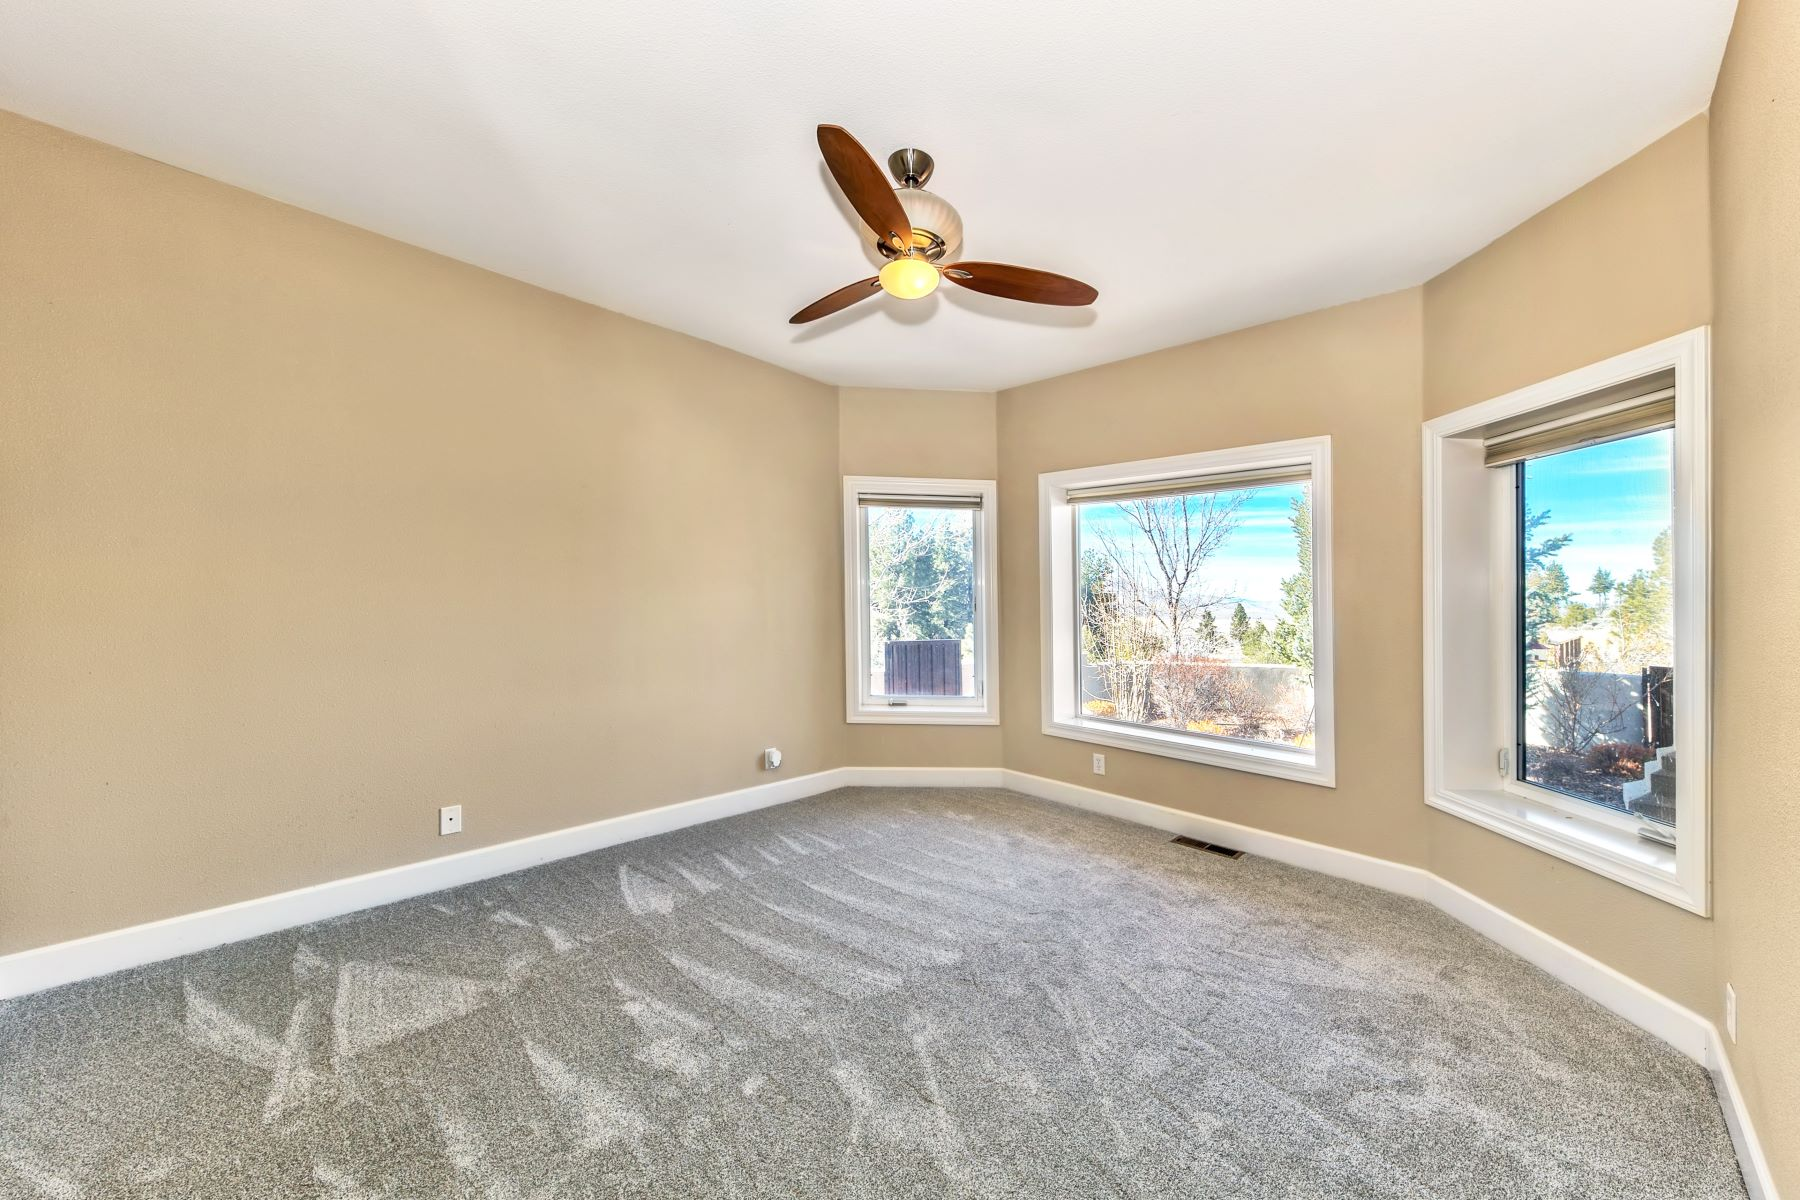 Additional photo for property listing at 14700 Sto Lat Lane, Reno, NV 89506 14700 Sto Lat Lane Reno, Nevada 89506 United States